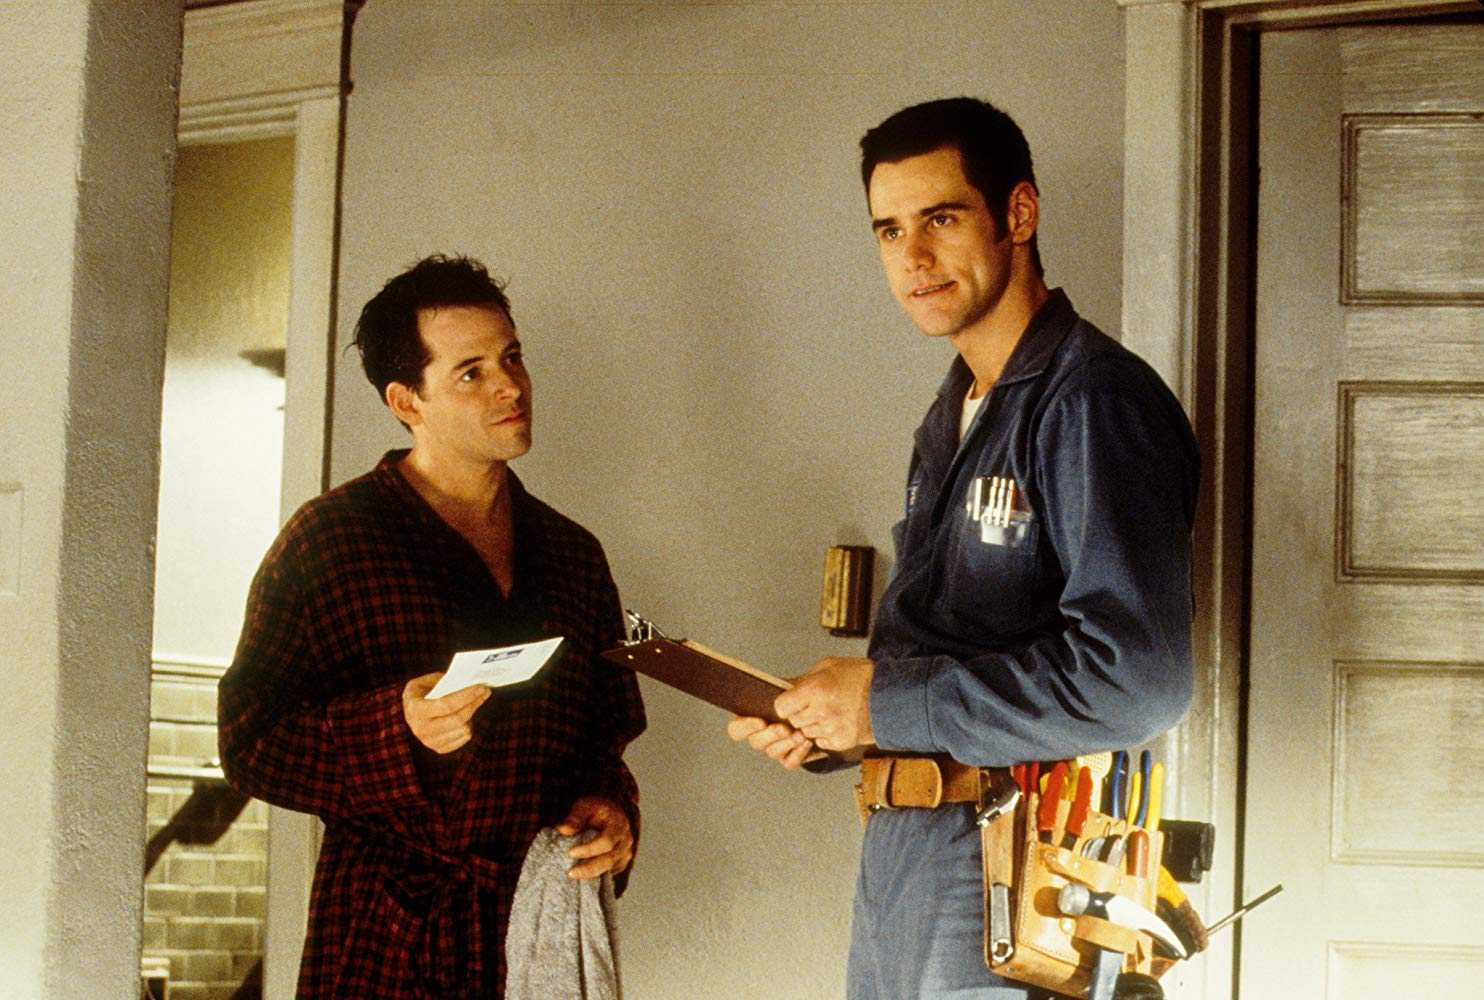 Matthew Broderick and Jim Carrey as Chip Douglas in The Cable Guy (1996)